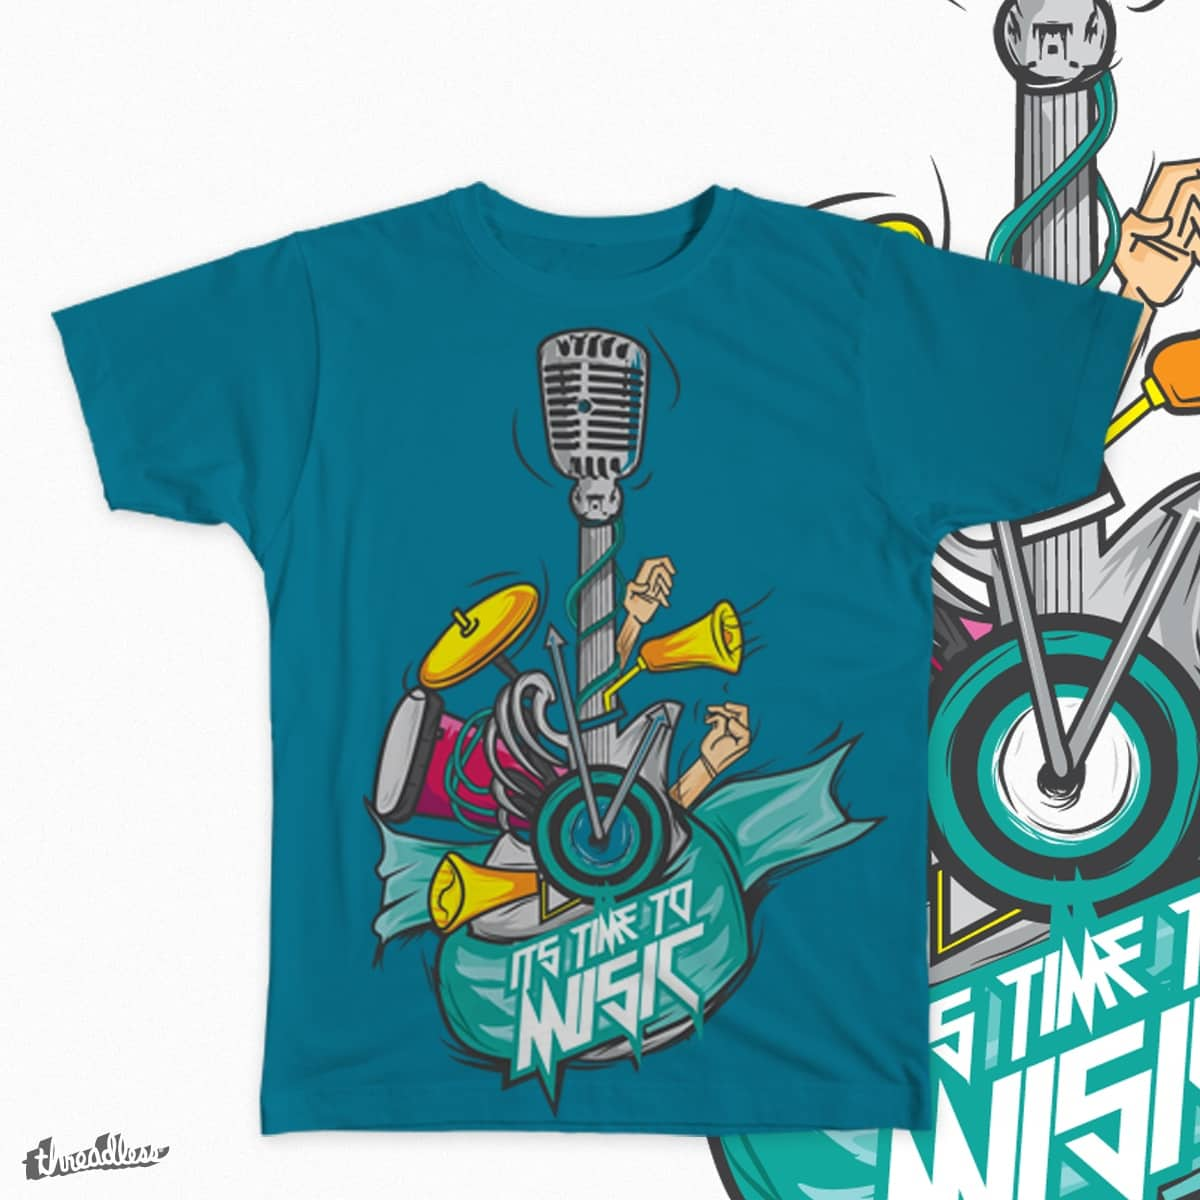 ITS TIME TO MUSIC by hendra95 on Threadless